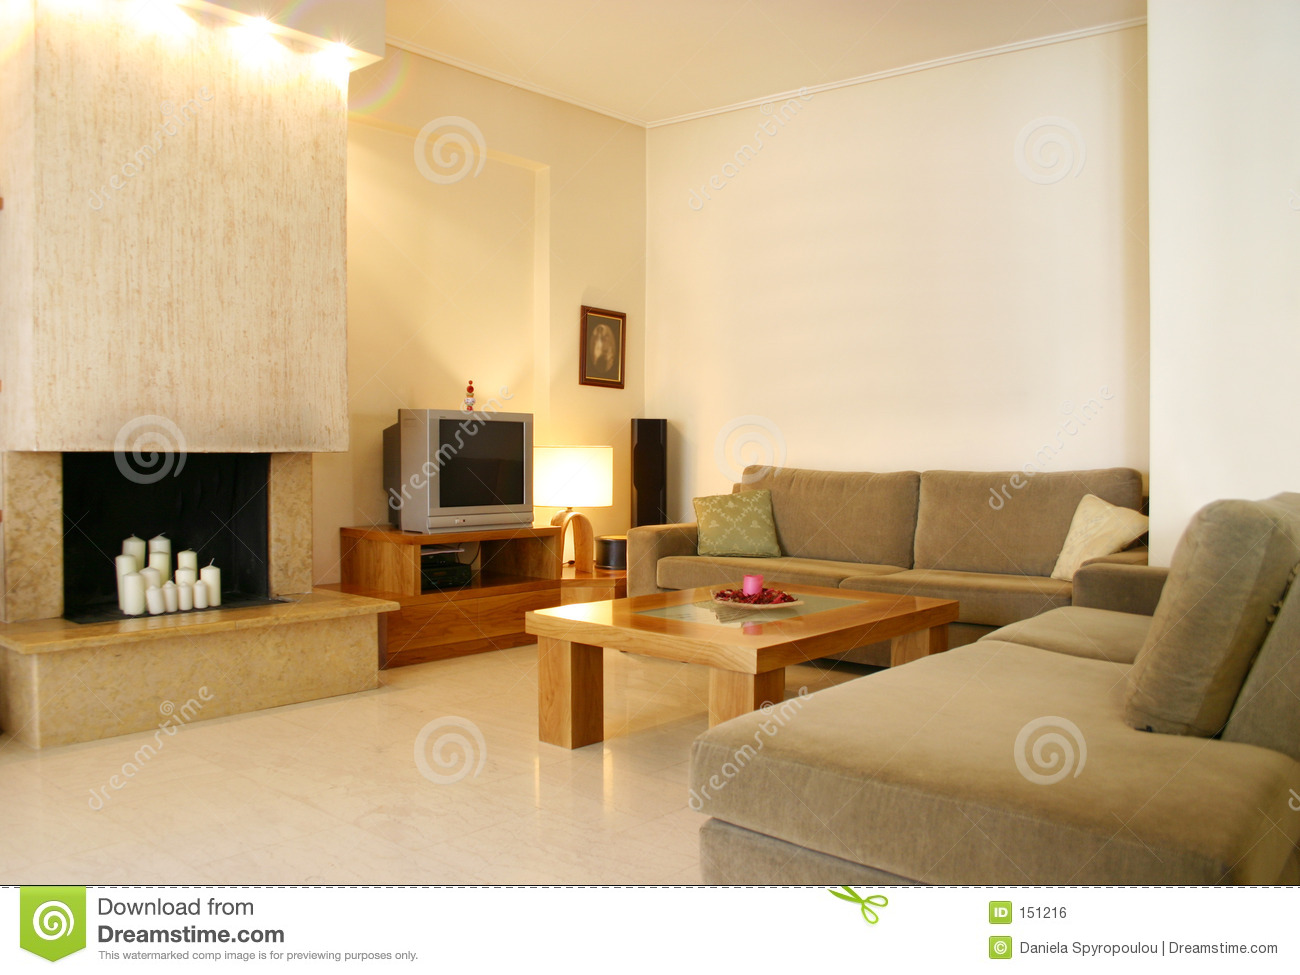 Home interior design stock photo. Image of modern, decorating - 151216